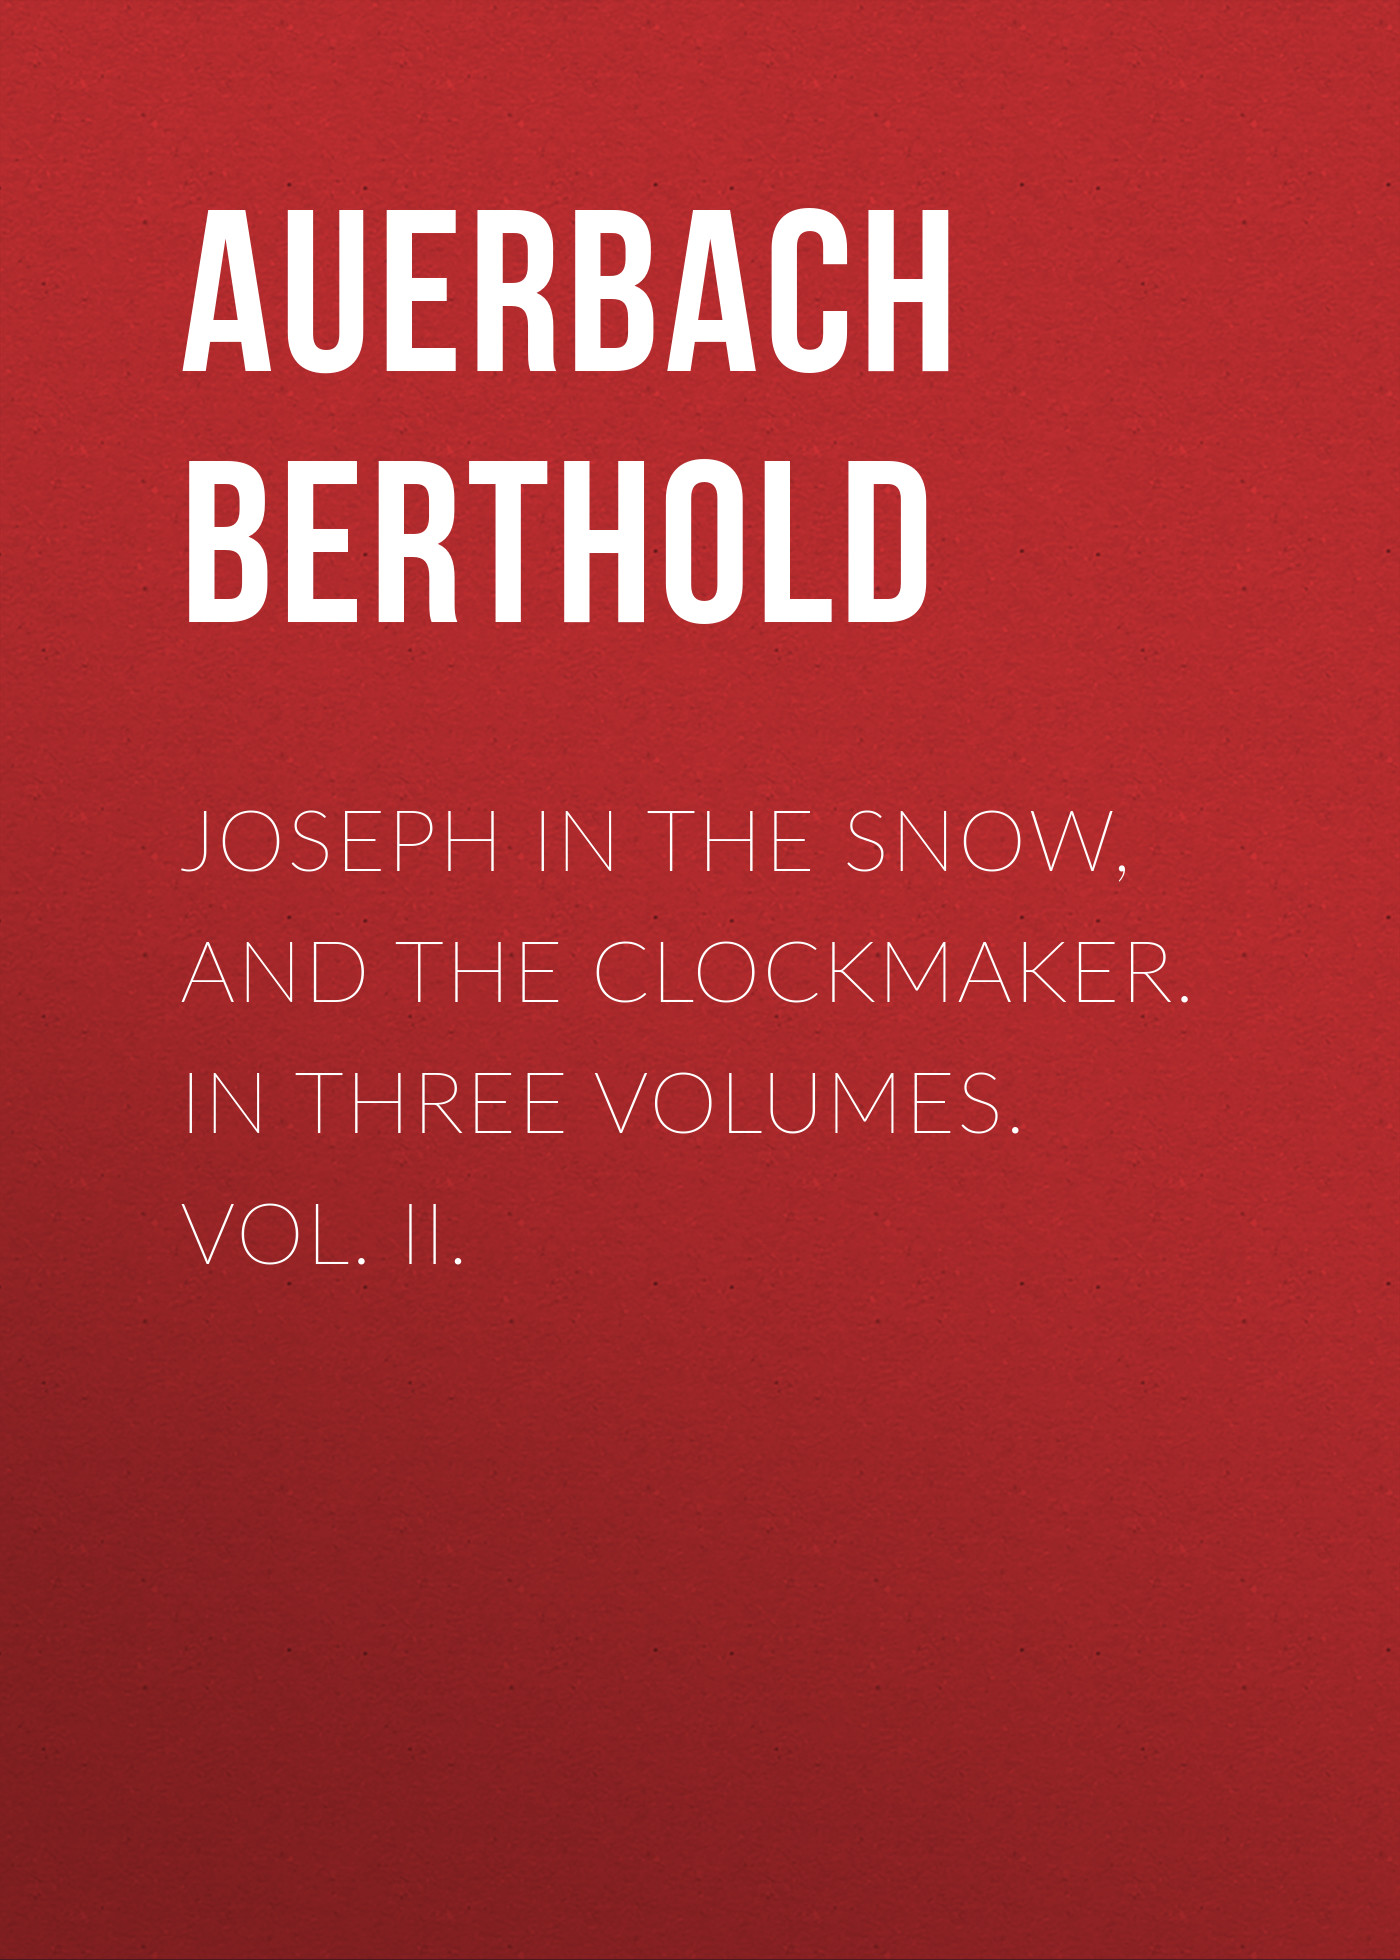 Auerbach Berthold Joseph in the Snow, and The Clockmaker. In Three Volumes. Vol. II.